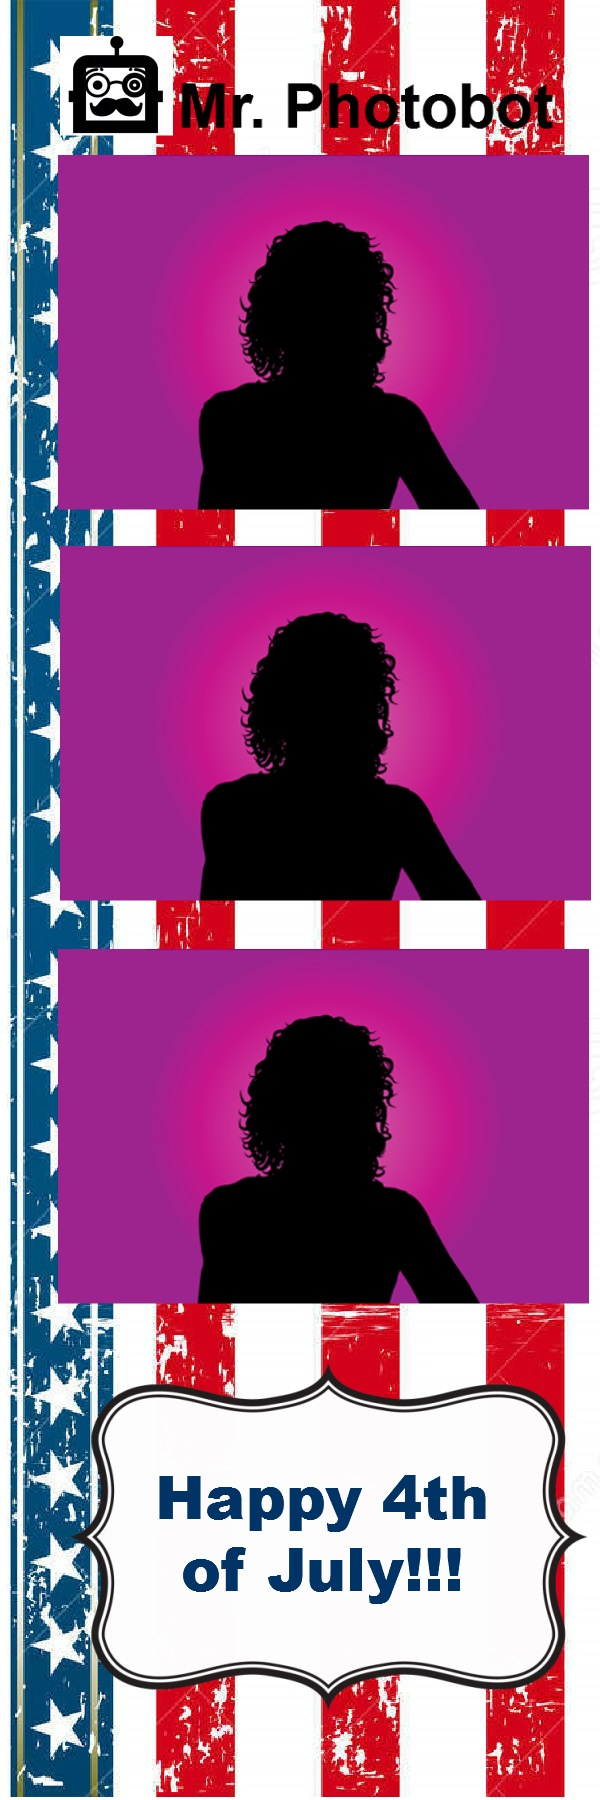 mrphotobot_4th_of_July_photostrip_mini.jpg